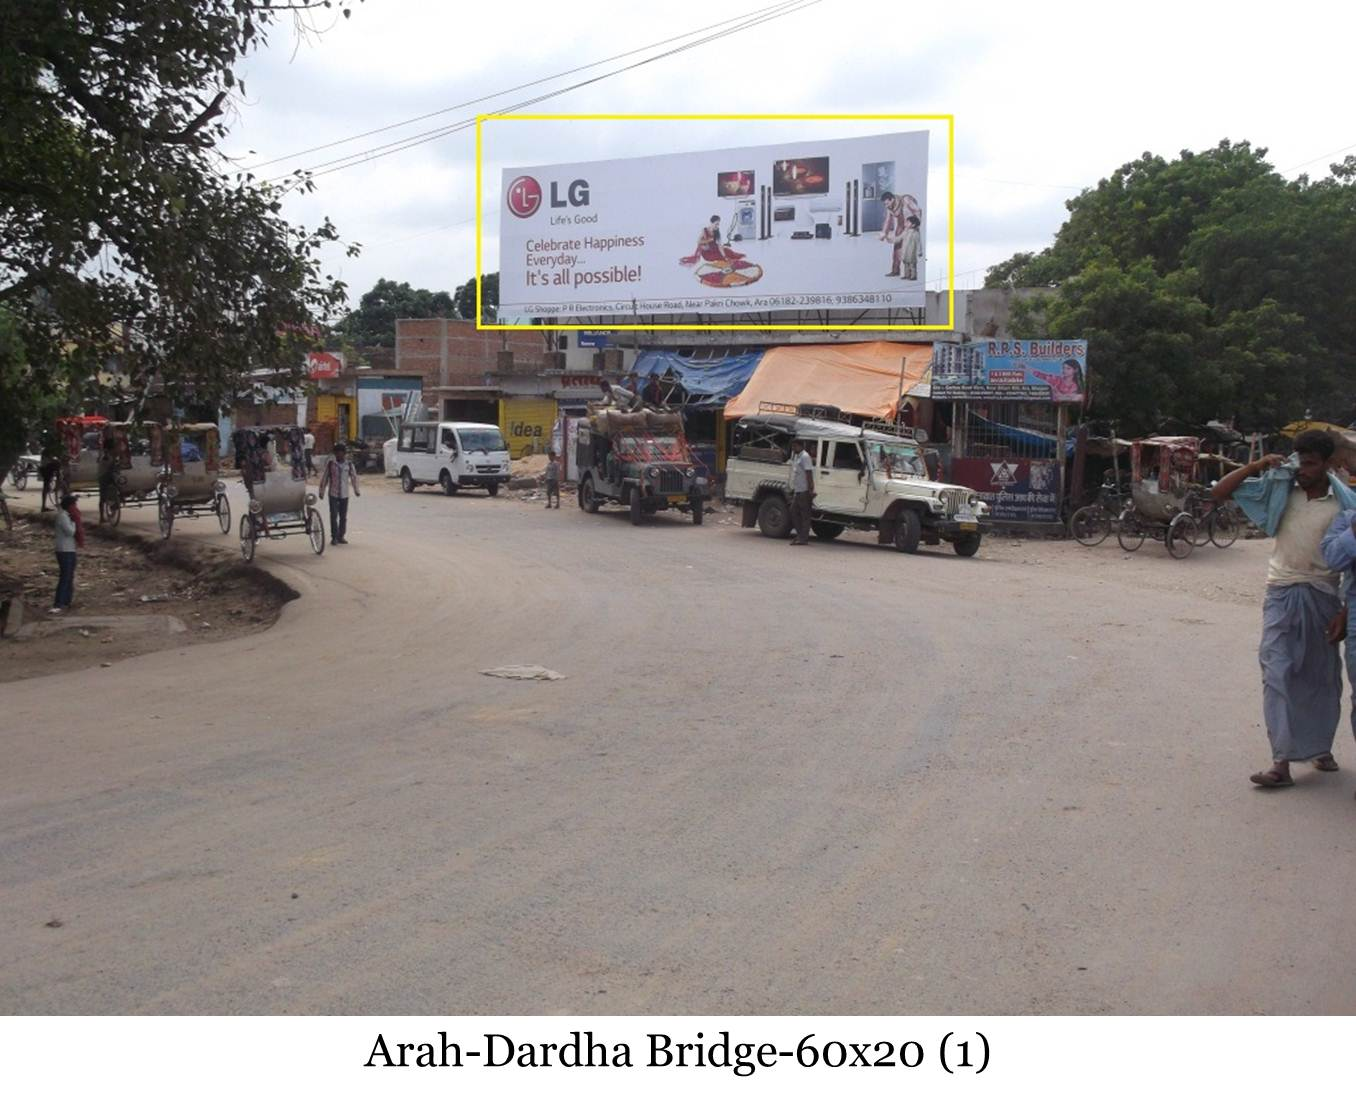 Dardha Bridge, Arrah